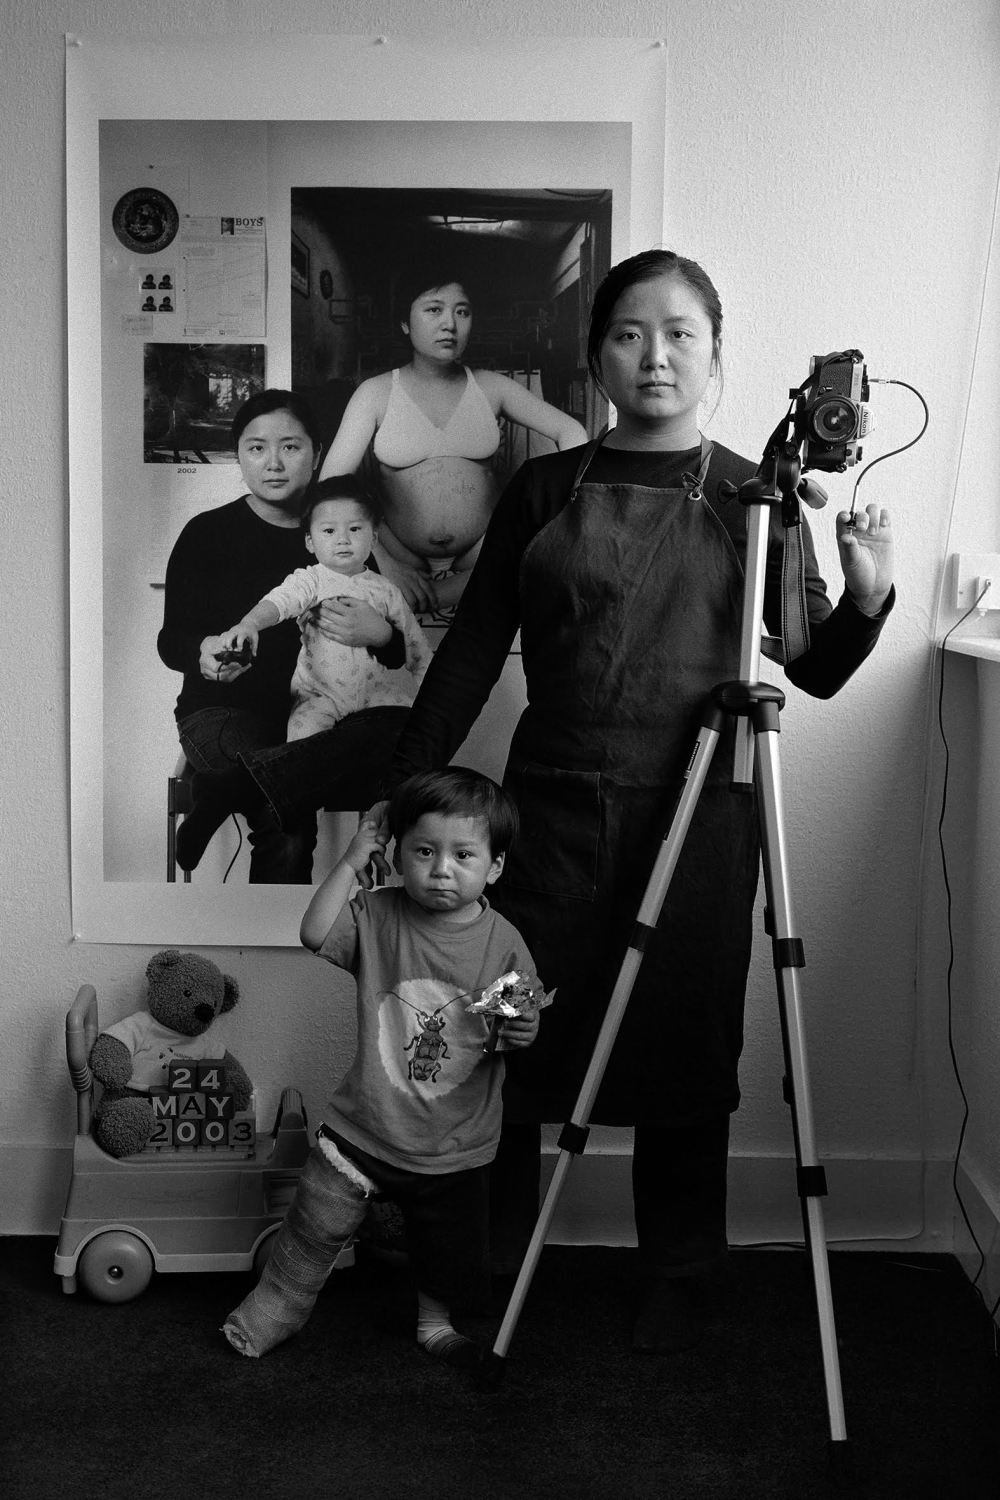 ©Annie Hsiao-Ching Wang, The Mother as a Creator, 2001 - 2018